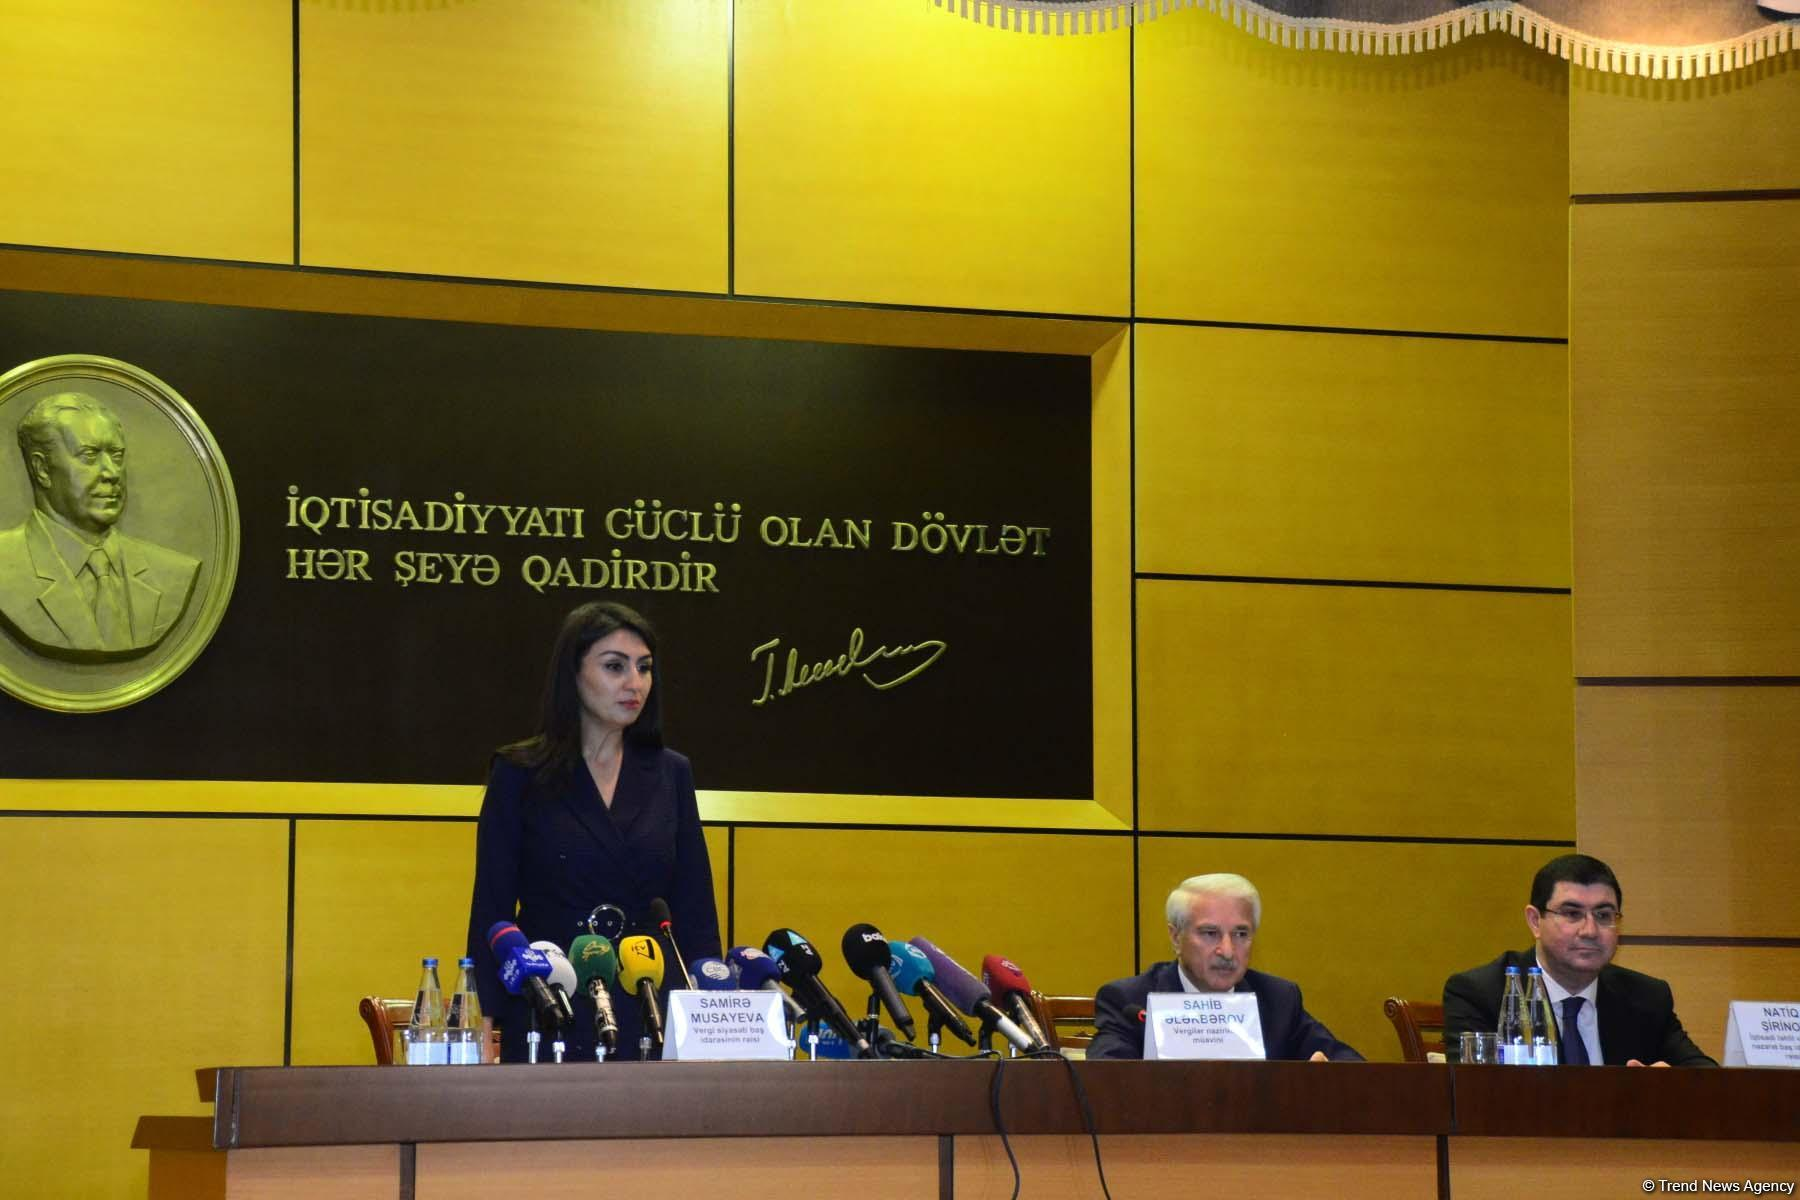 Ministry: Changes in Azerbaijan's Tax Code aimed at easing tax burden